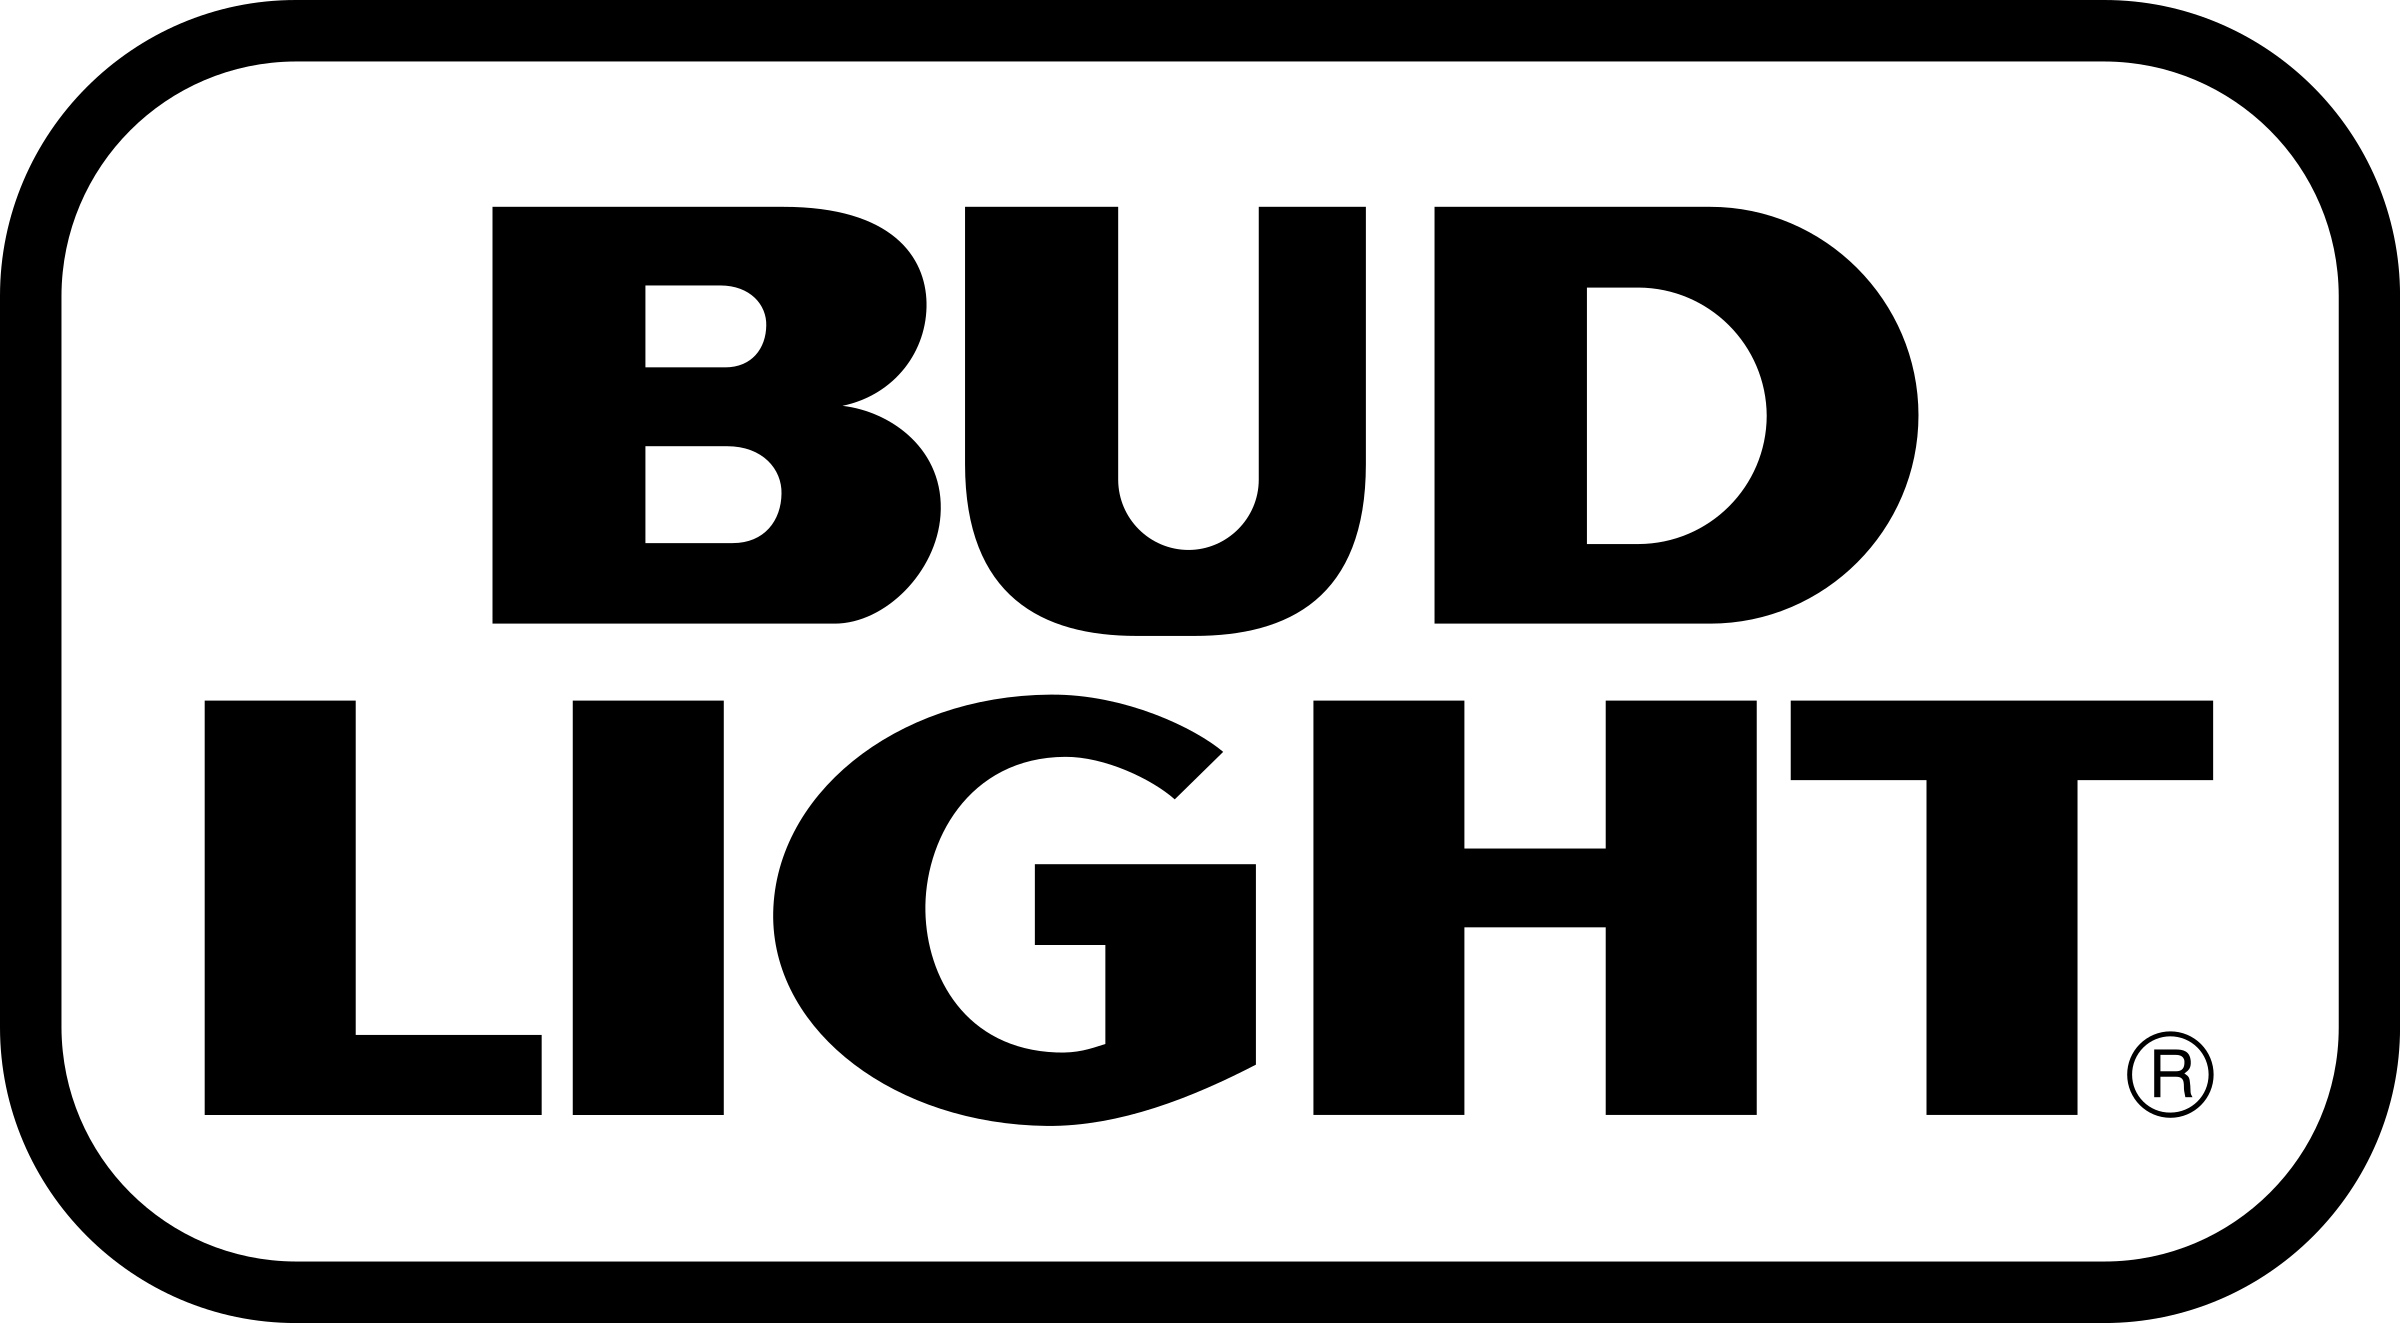 bud-light-old-logo-png-transparent.png